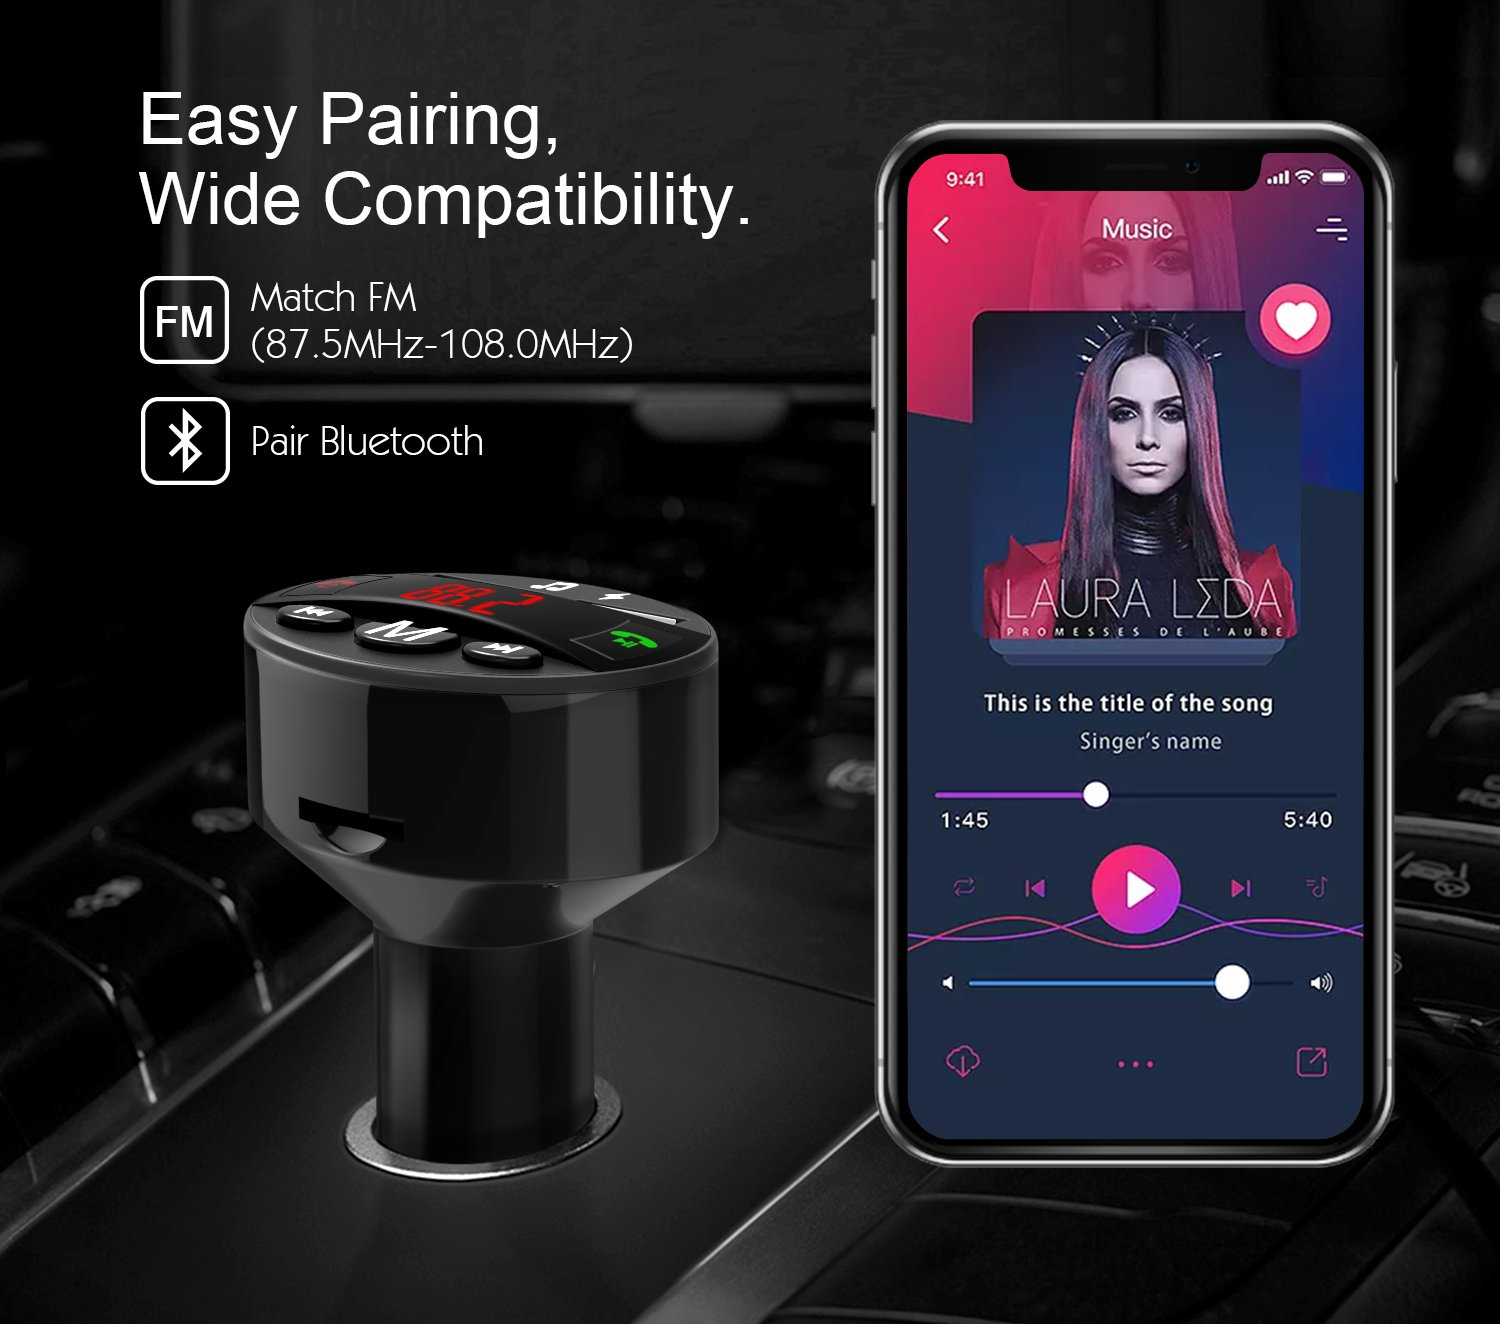 USB Flash Drive Reader Port Black 4351491635 LCD Display MoKo FM Transmitter with QC 3.0 Port 3 Playing Modes TF Card Slot Bluetooth In-Car Radio Adapter Audio Receiver with Hands-free Calling